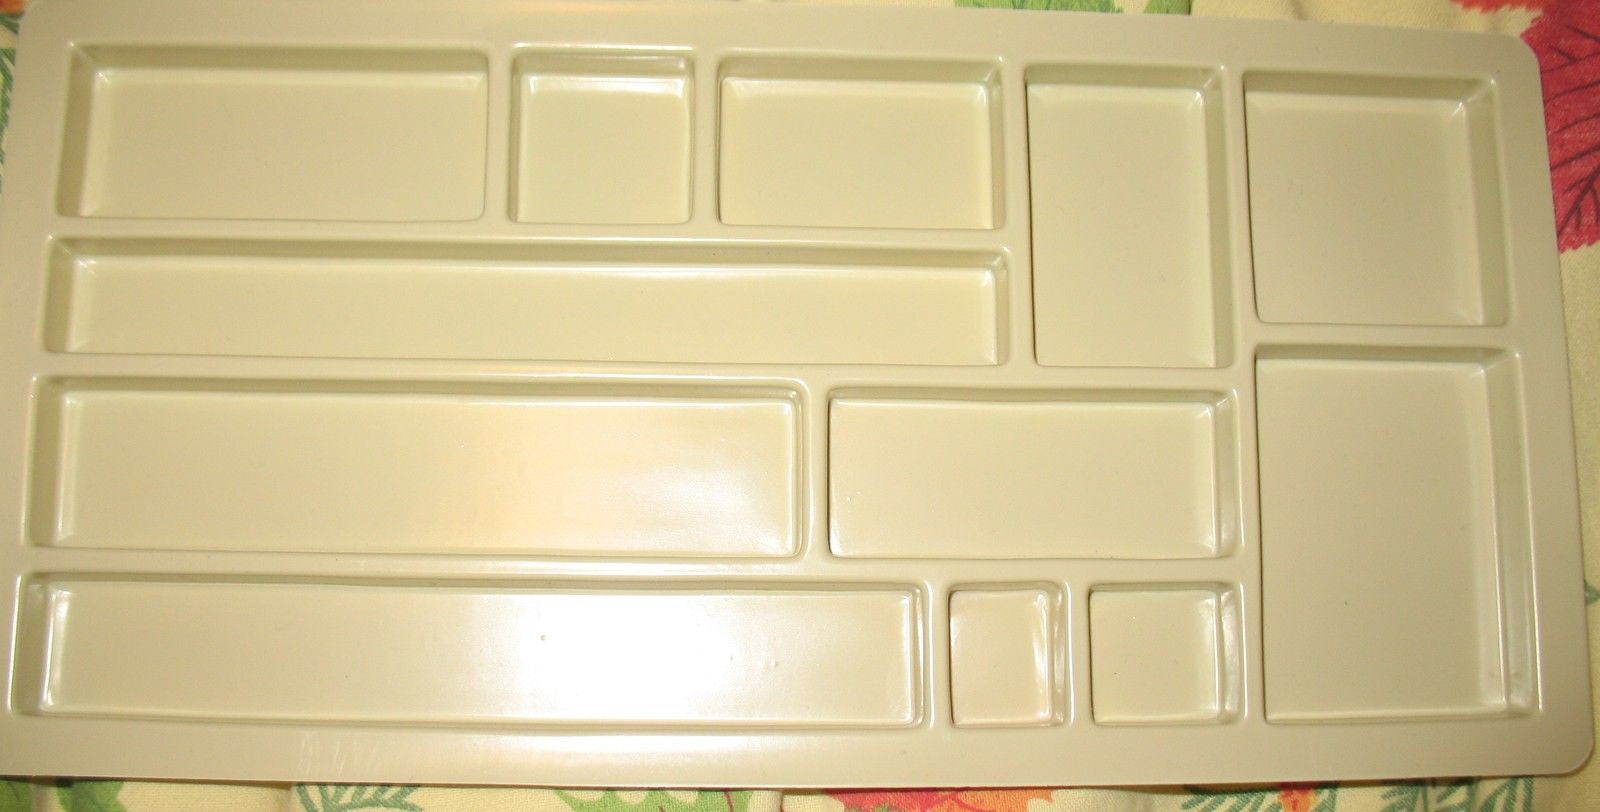 A056 3SB GI JOE 10 X Reproduction Foot Locker Footlocker Trays New.